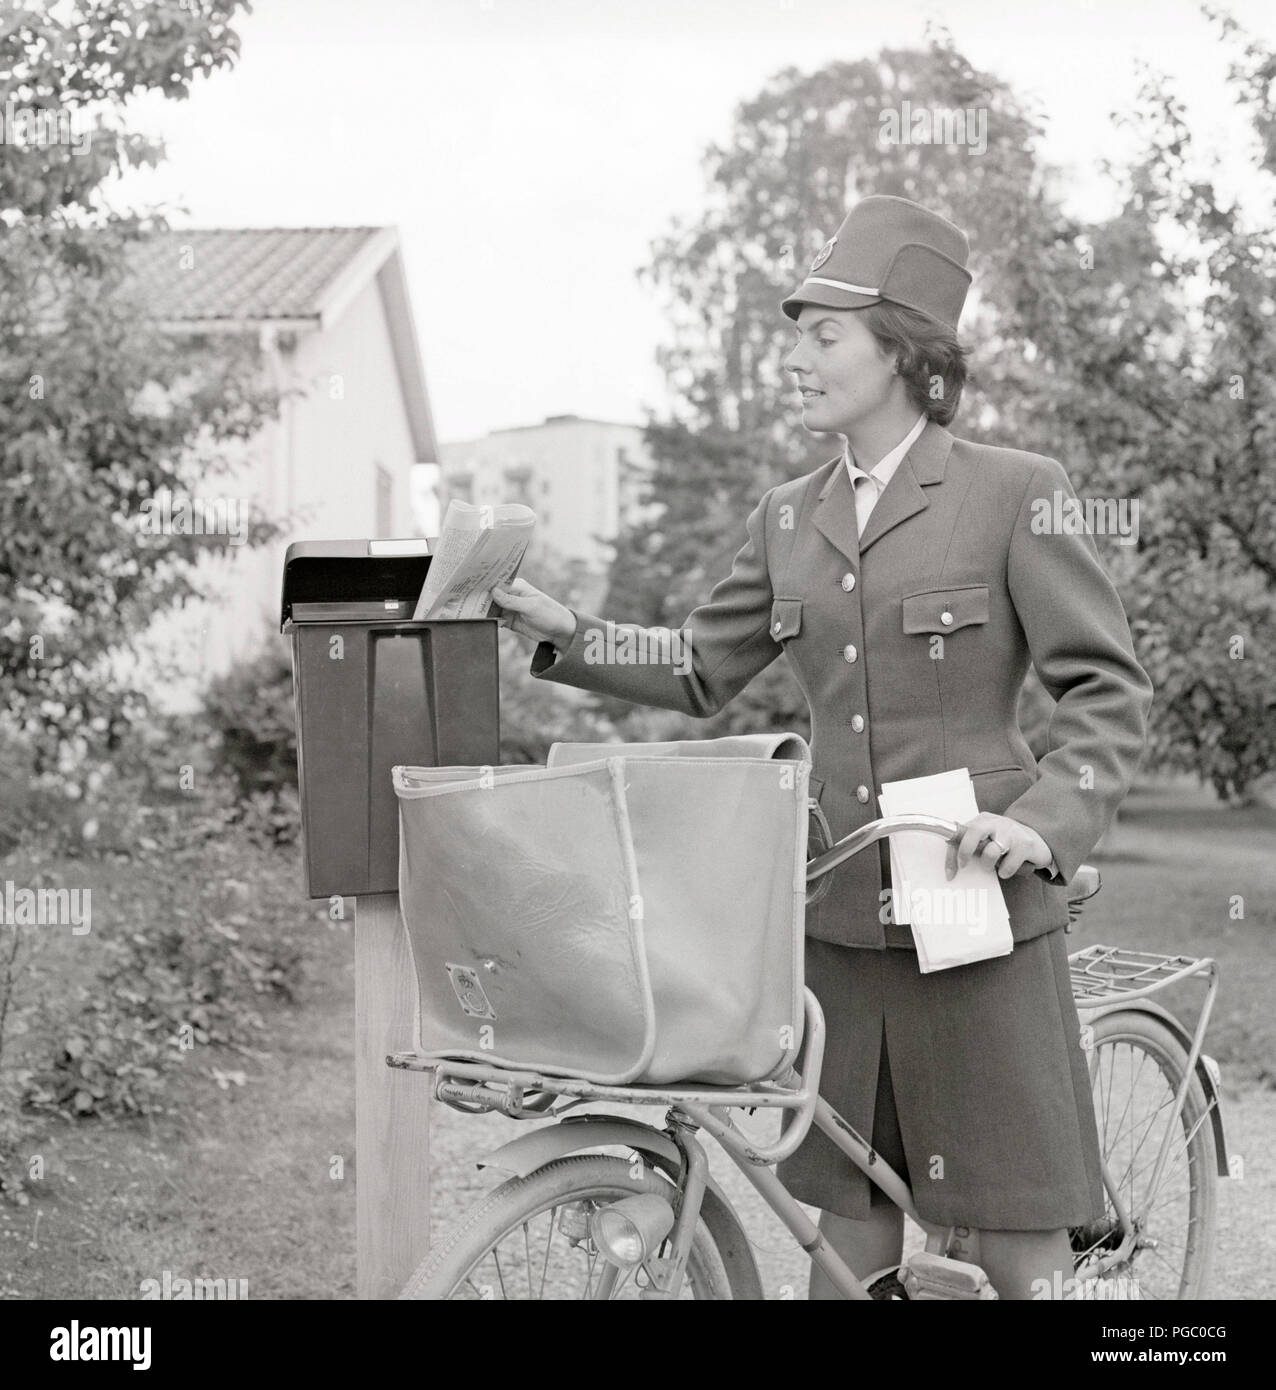 1960s postman. A woman in the swedish postal service uniform delivers mail and put the letters in a mailbox. Sweden 1960s.  Photo Kristoffersson DG114-7 - Stock Image